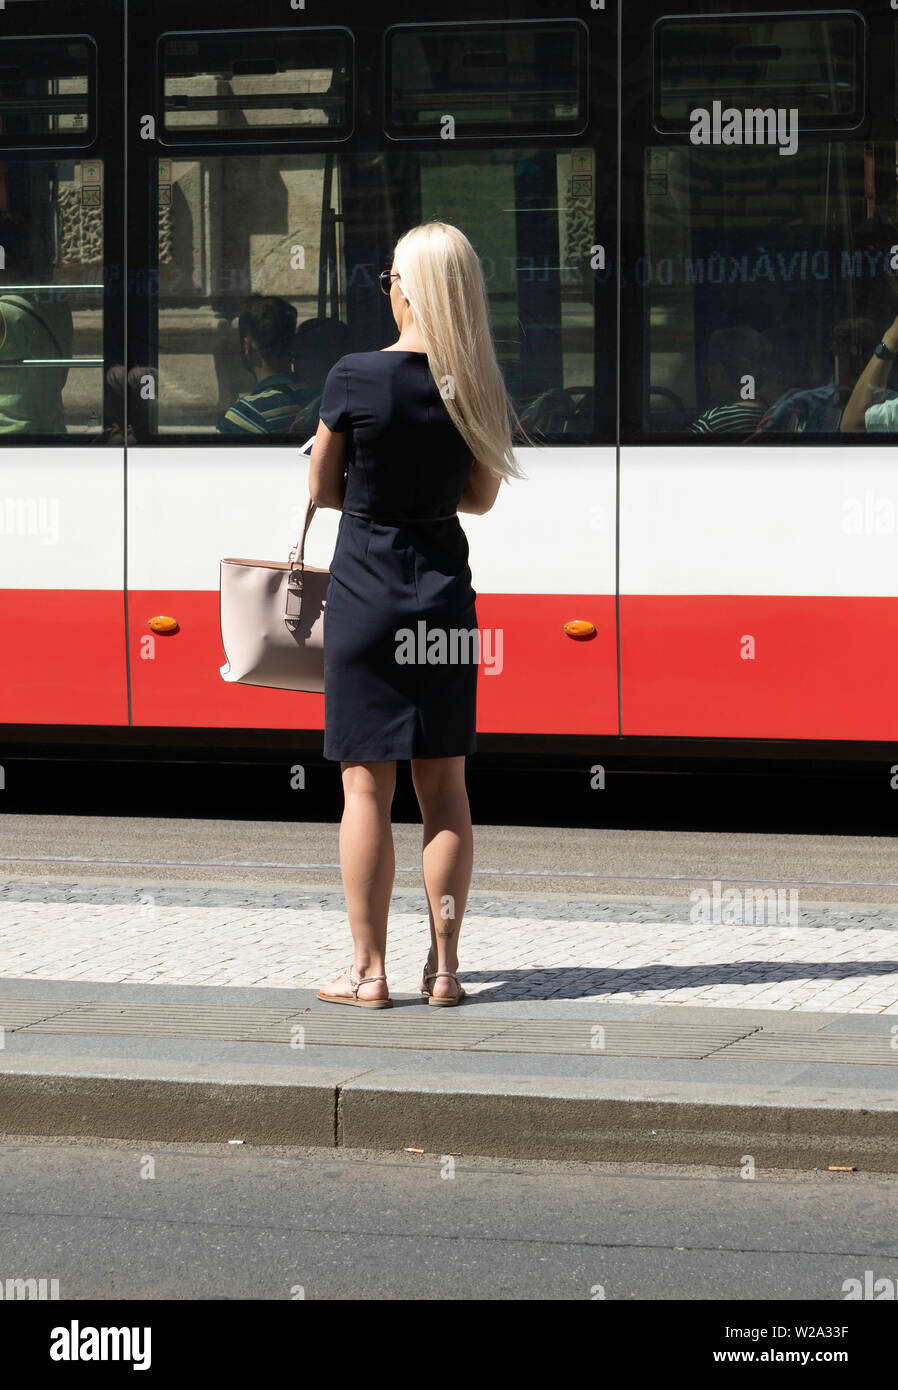 Young blond woman wearing black dress carrying a pink handbag waiting for the Tram in Prague Europe. Background tram with people in their seats. - Stock Image